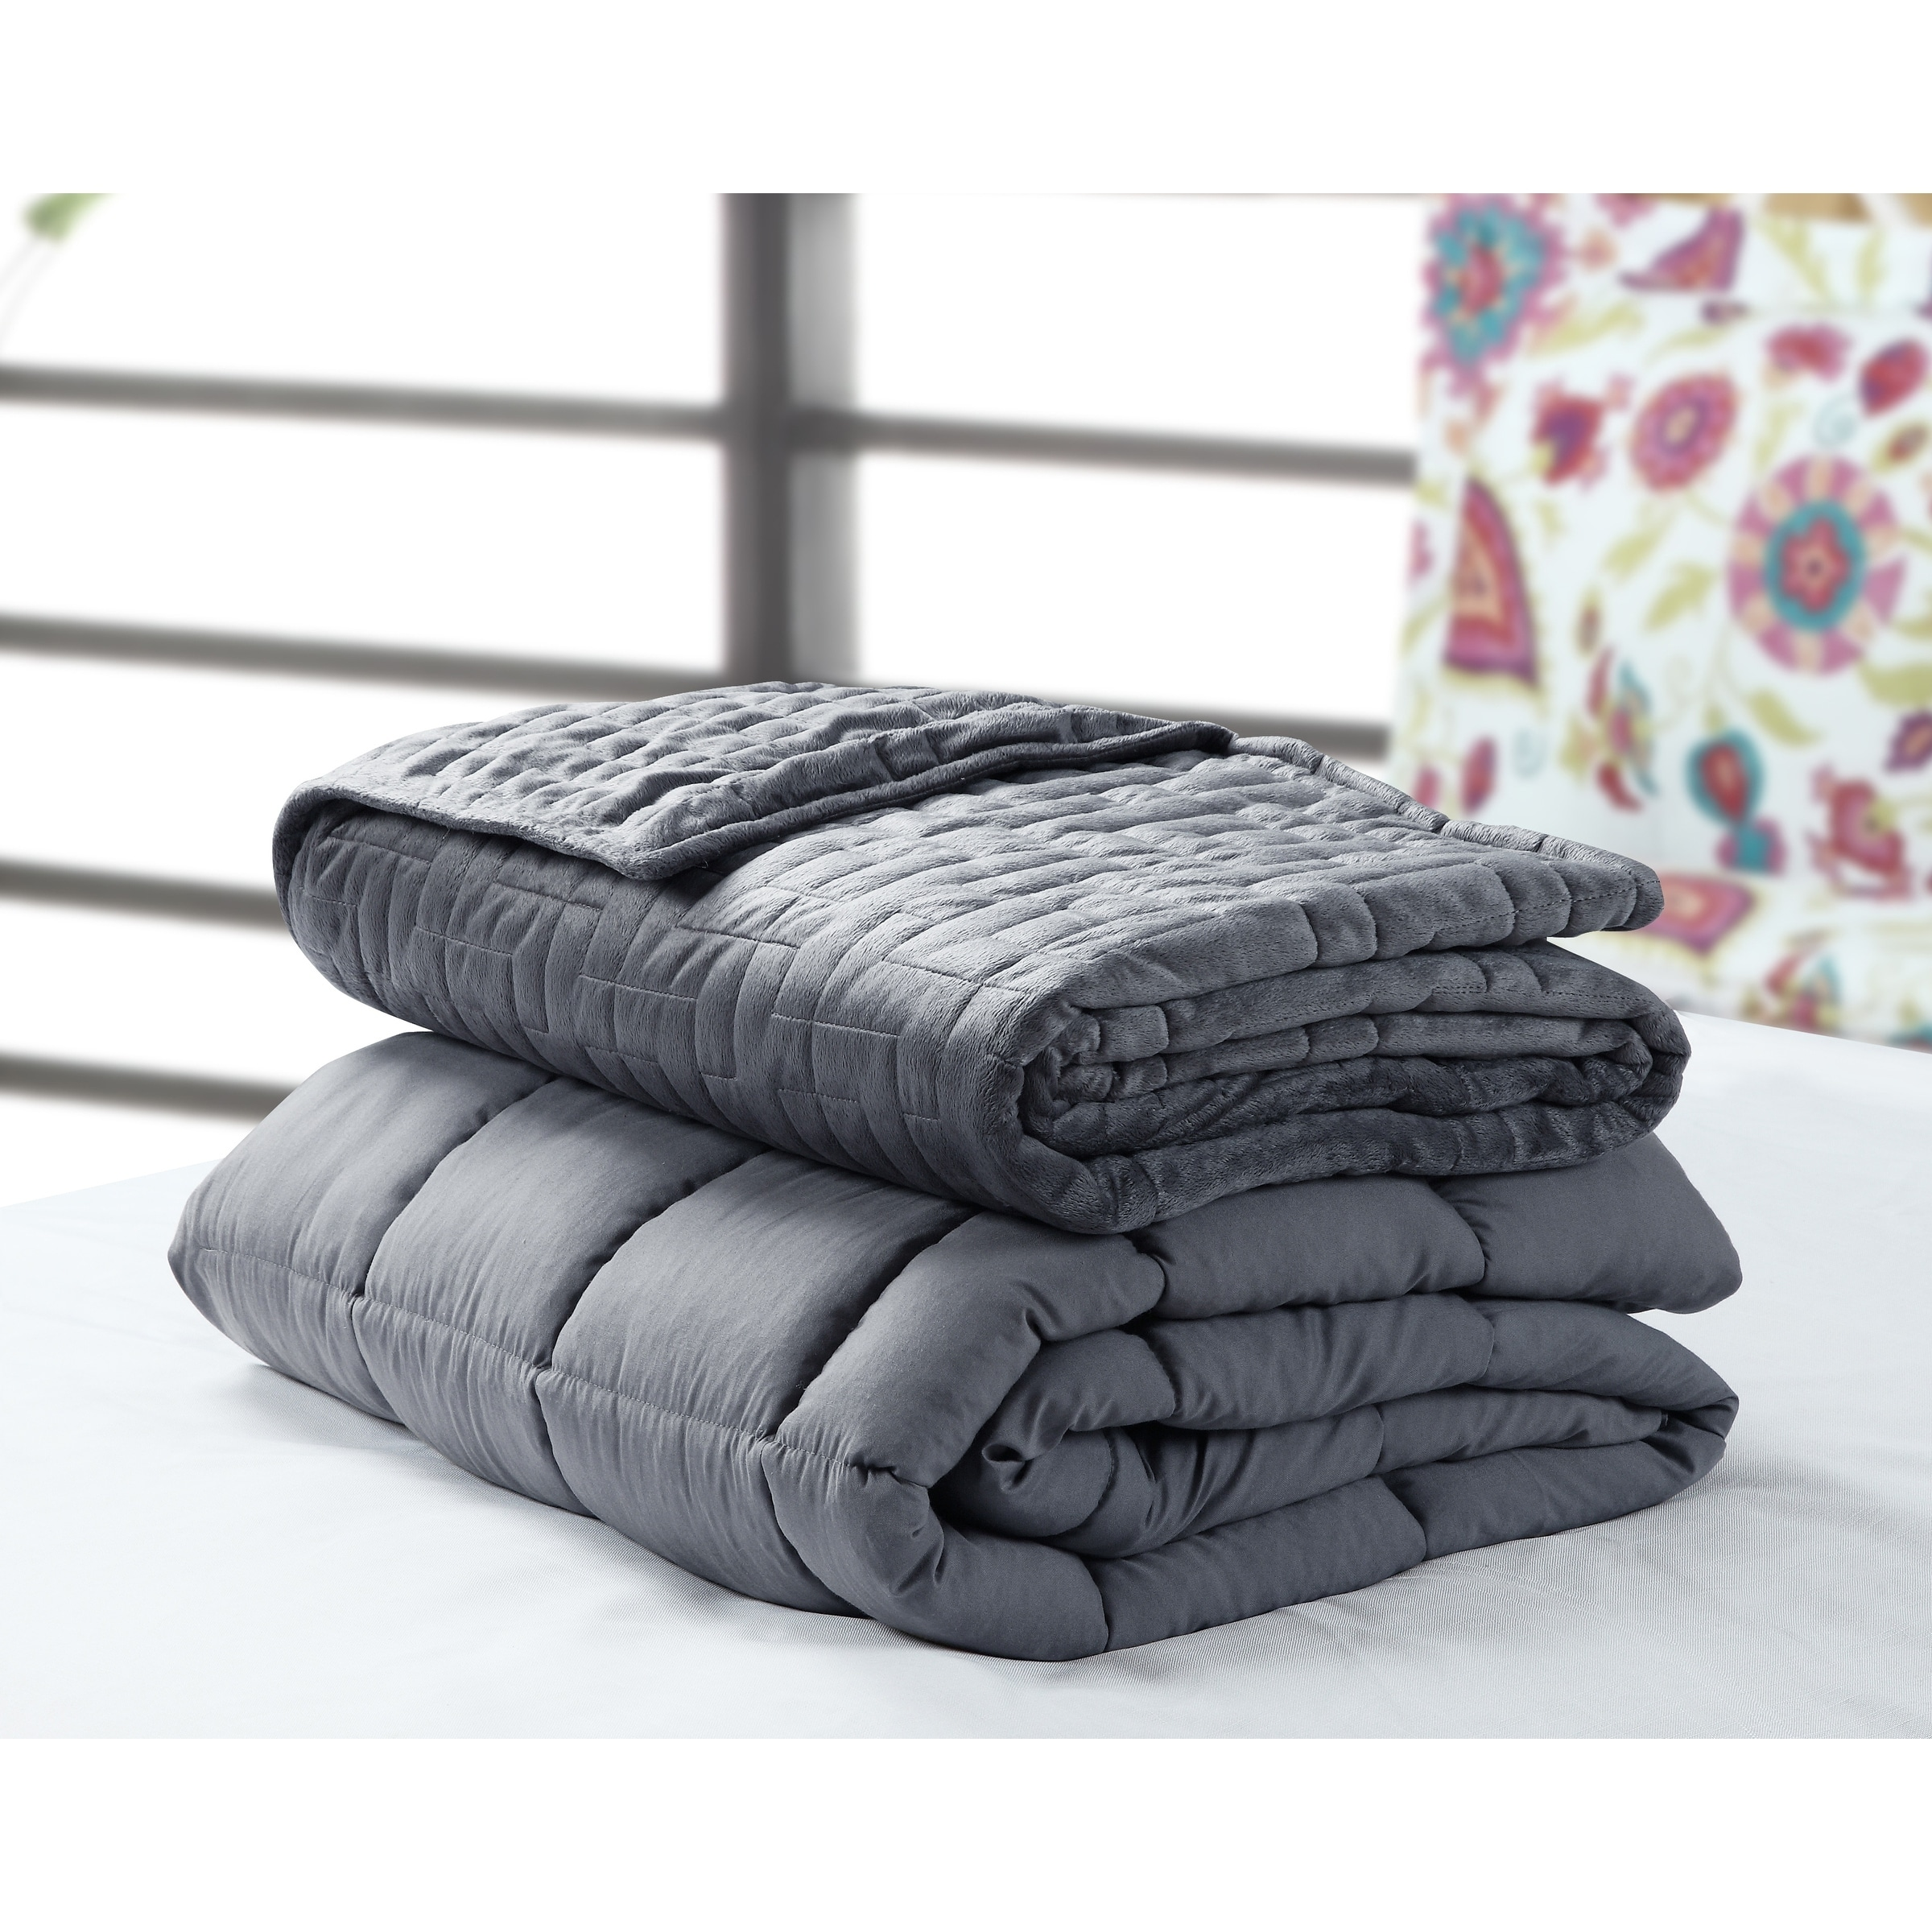 Weighted Blanket With Option Of Quilted Duvet Cover Overstock 24266122